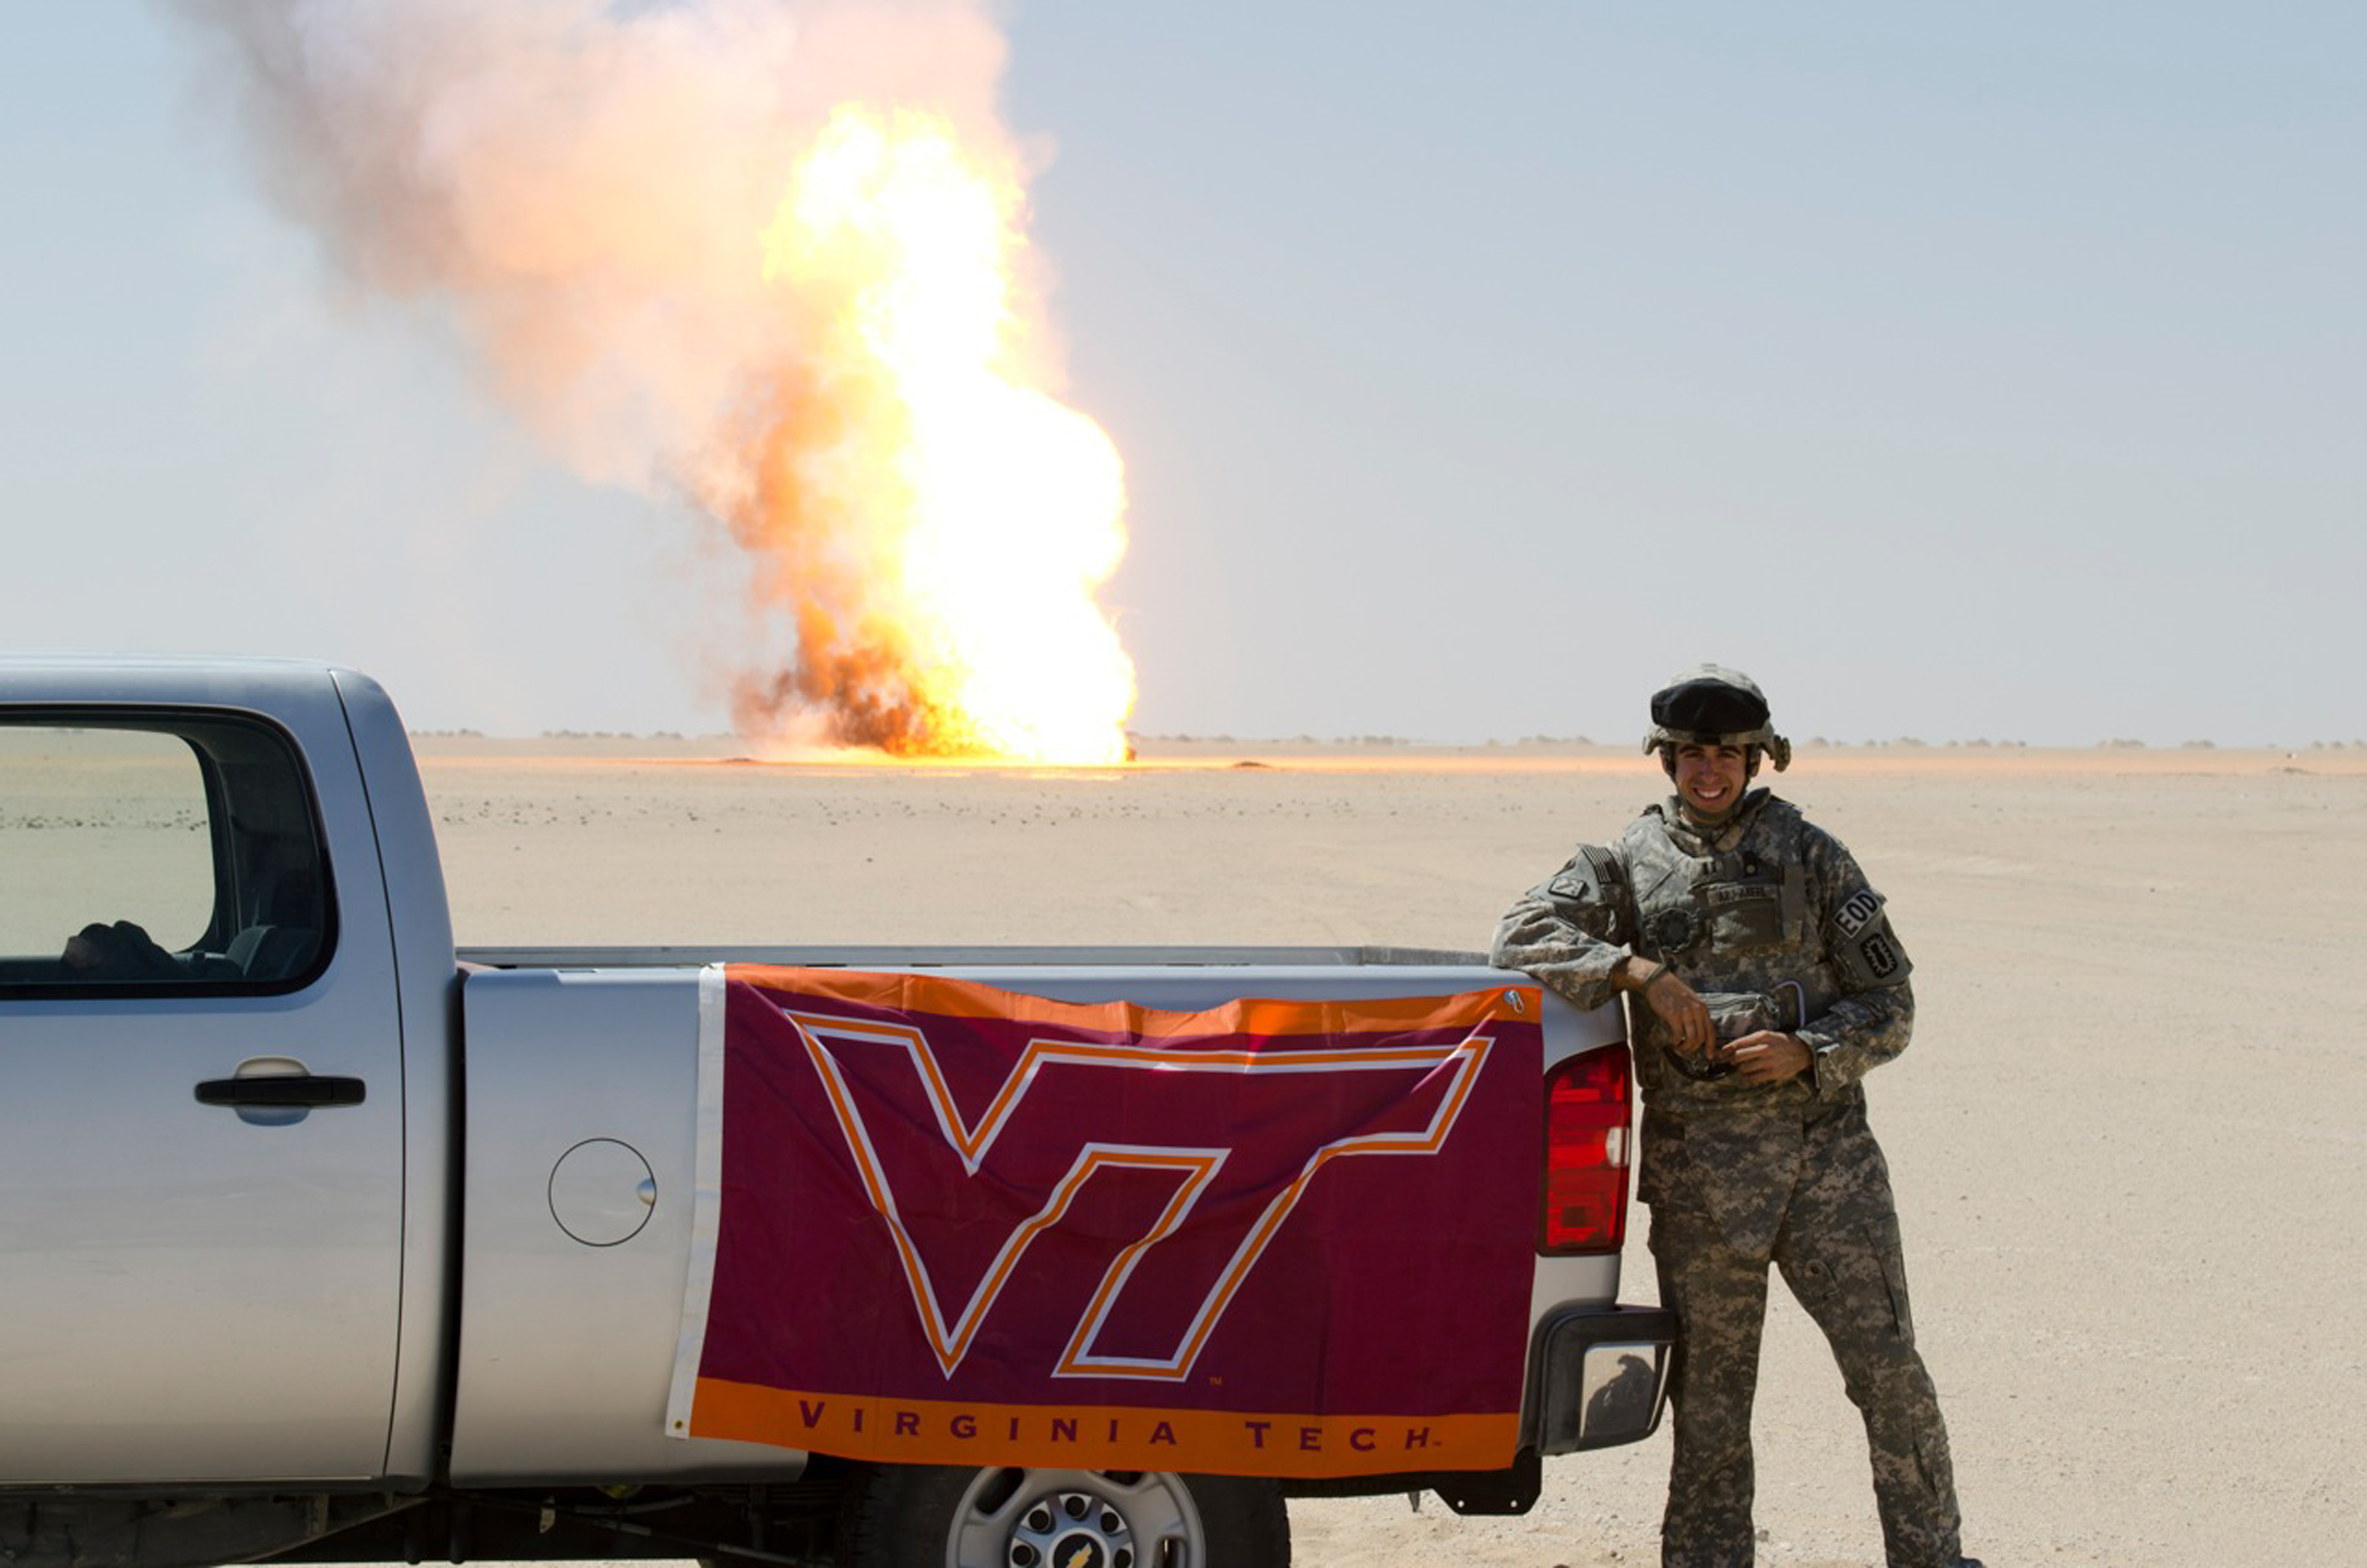 Capt. Amir Abu-Akeel, U.S. Army, Virginia Tech Corps of Cadets Class of 2006 standing in front a controlled explosion from his deployed location